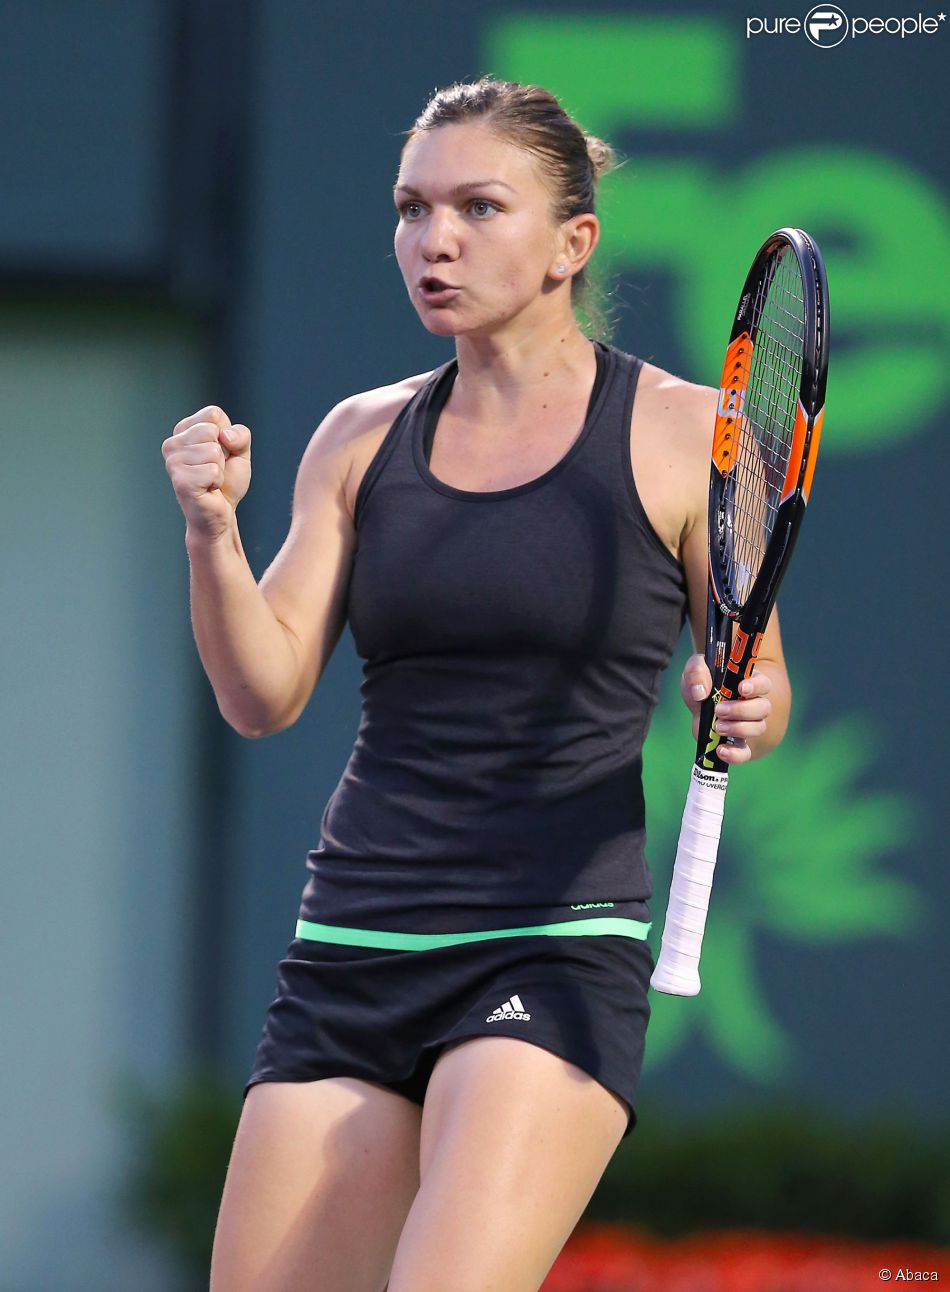 Romania's Simona Halep reacts after shot against the United States' Sloane Stephens during the quarterfinals of the Miami Open at Crandon Park in Key Biscayne, Miami, FL, USA on April 1, 2015. Halep advanced, 6-1, 7-5. Photo by David Santiago/El Nuevo Herald/TNS/ABACAPRESS.COM02/04/2015 - Miami